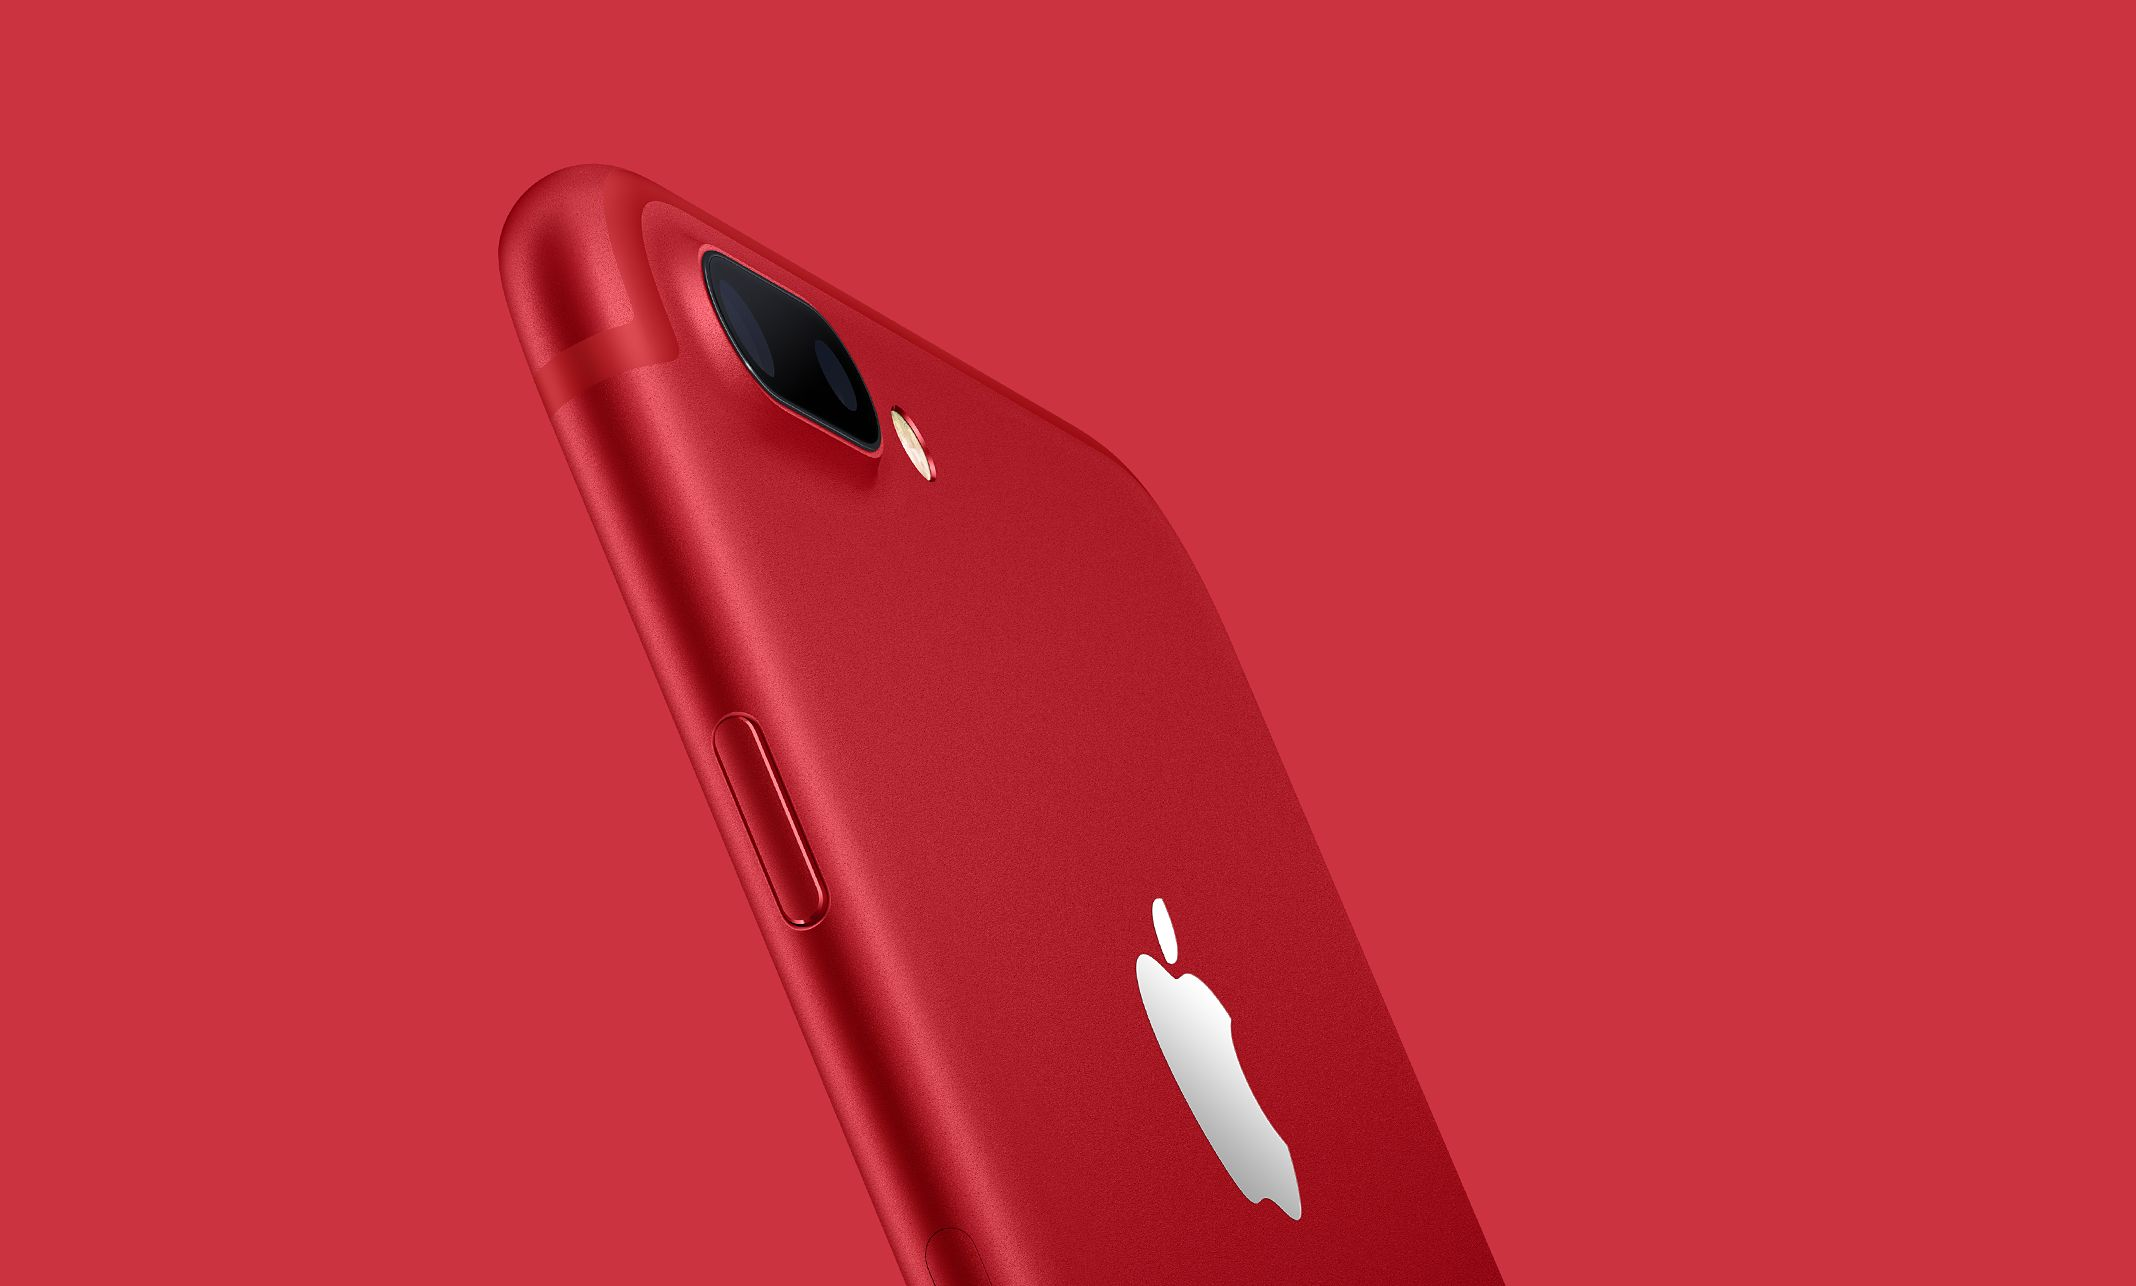 Apple、新色レッド「iPhone 7 (PRODUCT)RED Special Edition」を発売